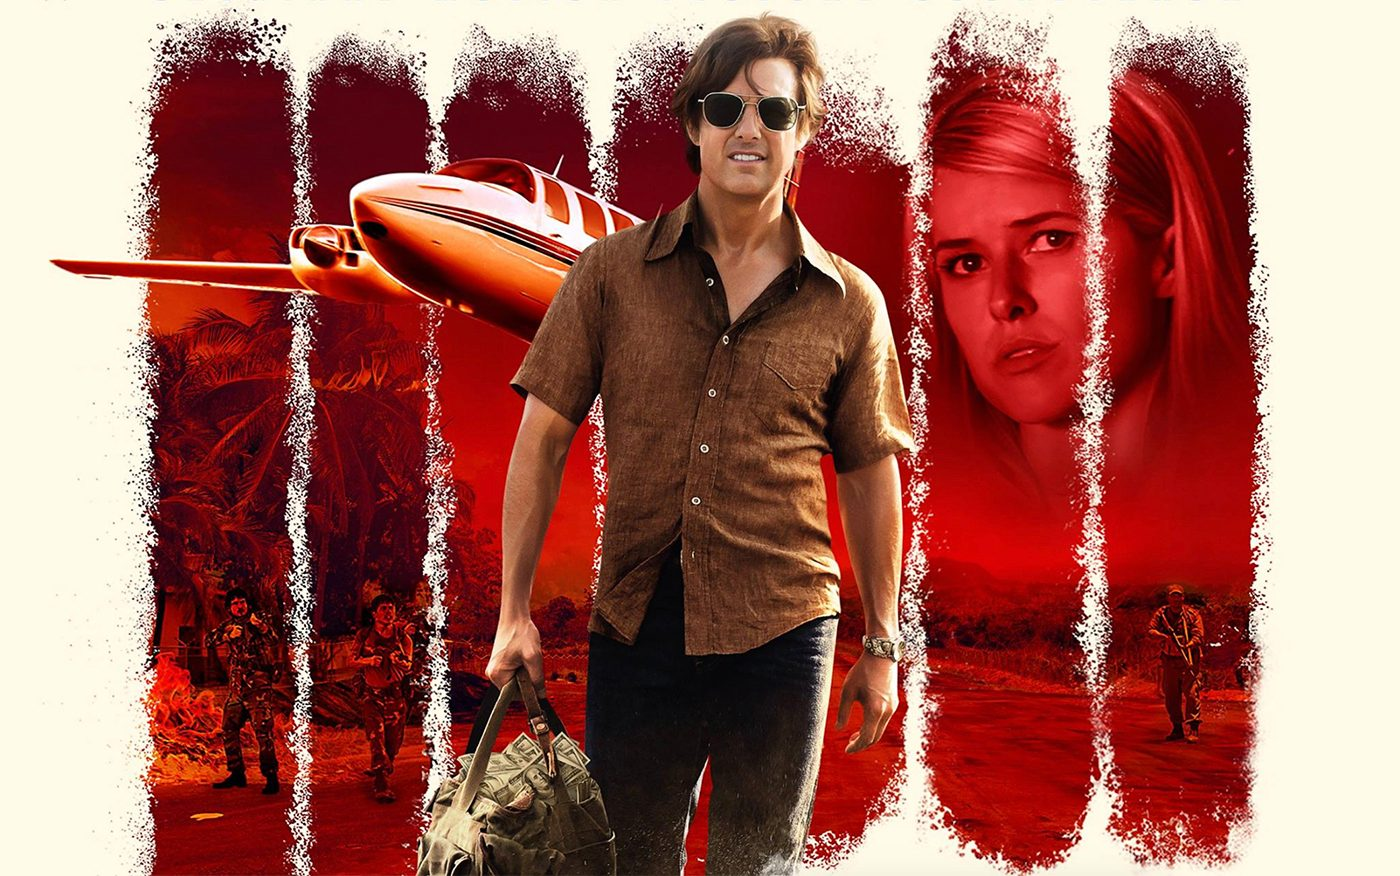 Best action movies on Netflix Canada - American Made